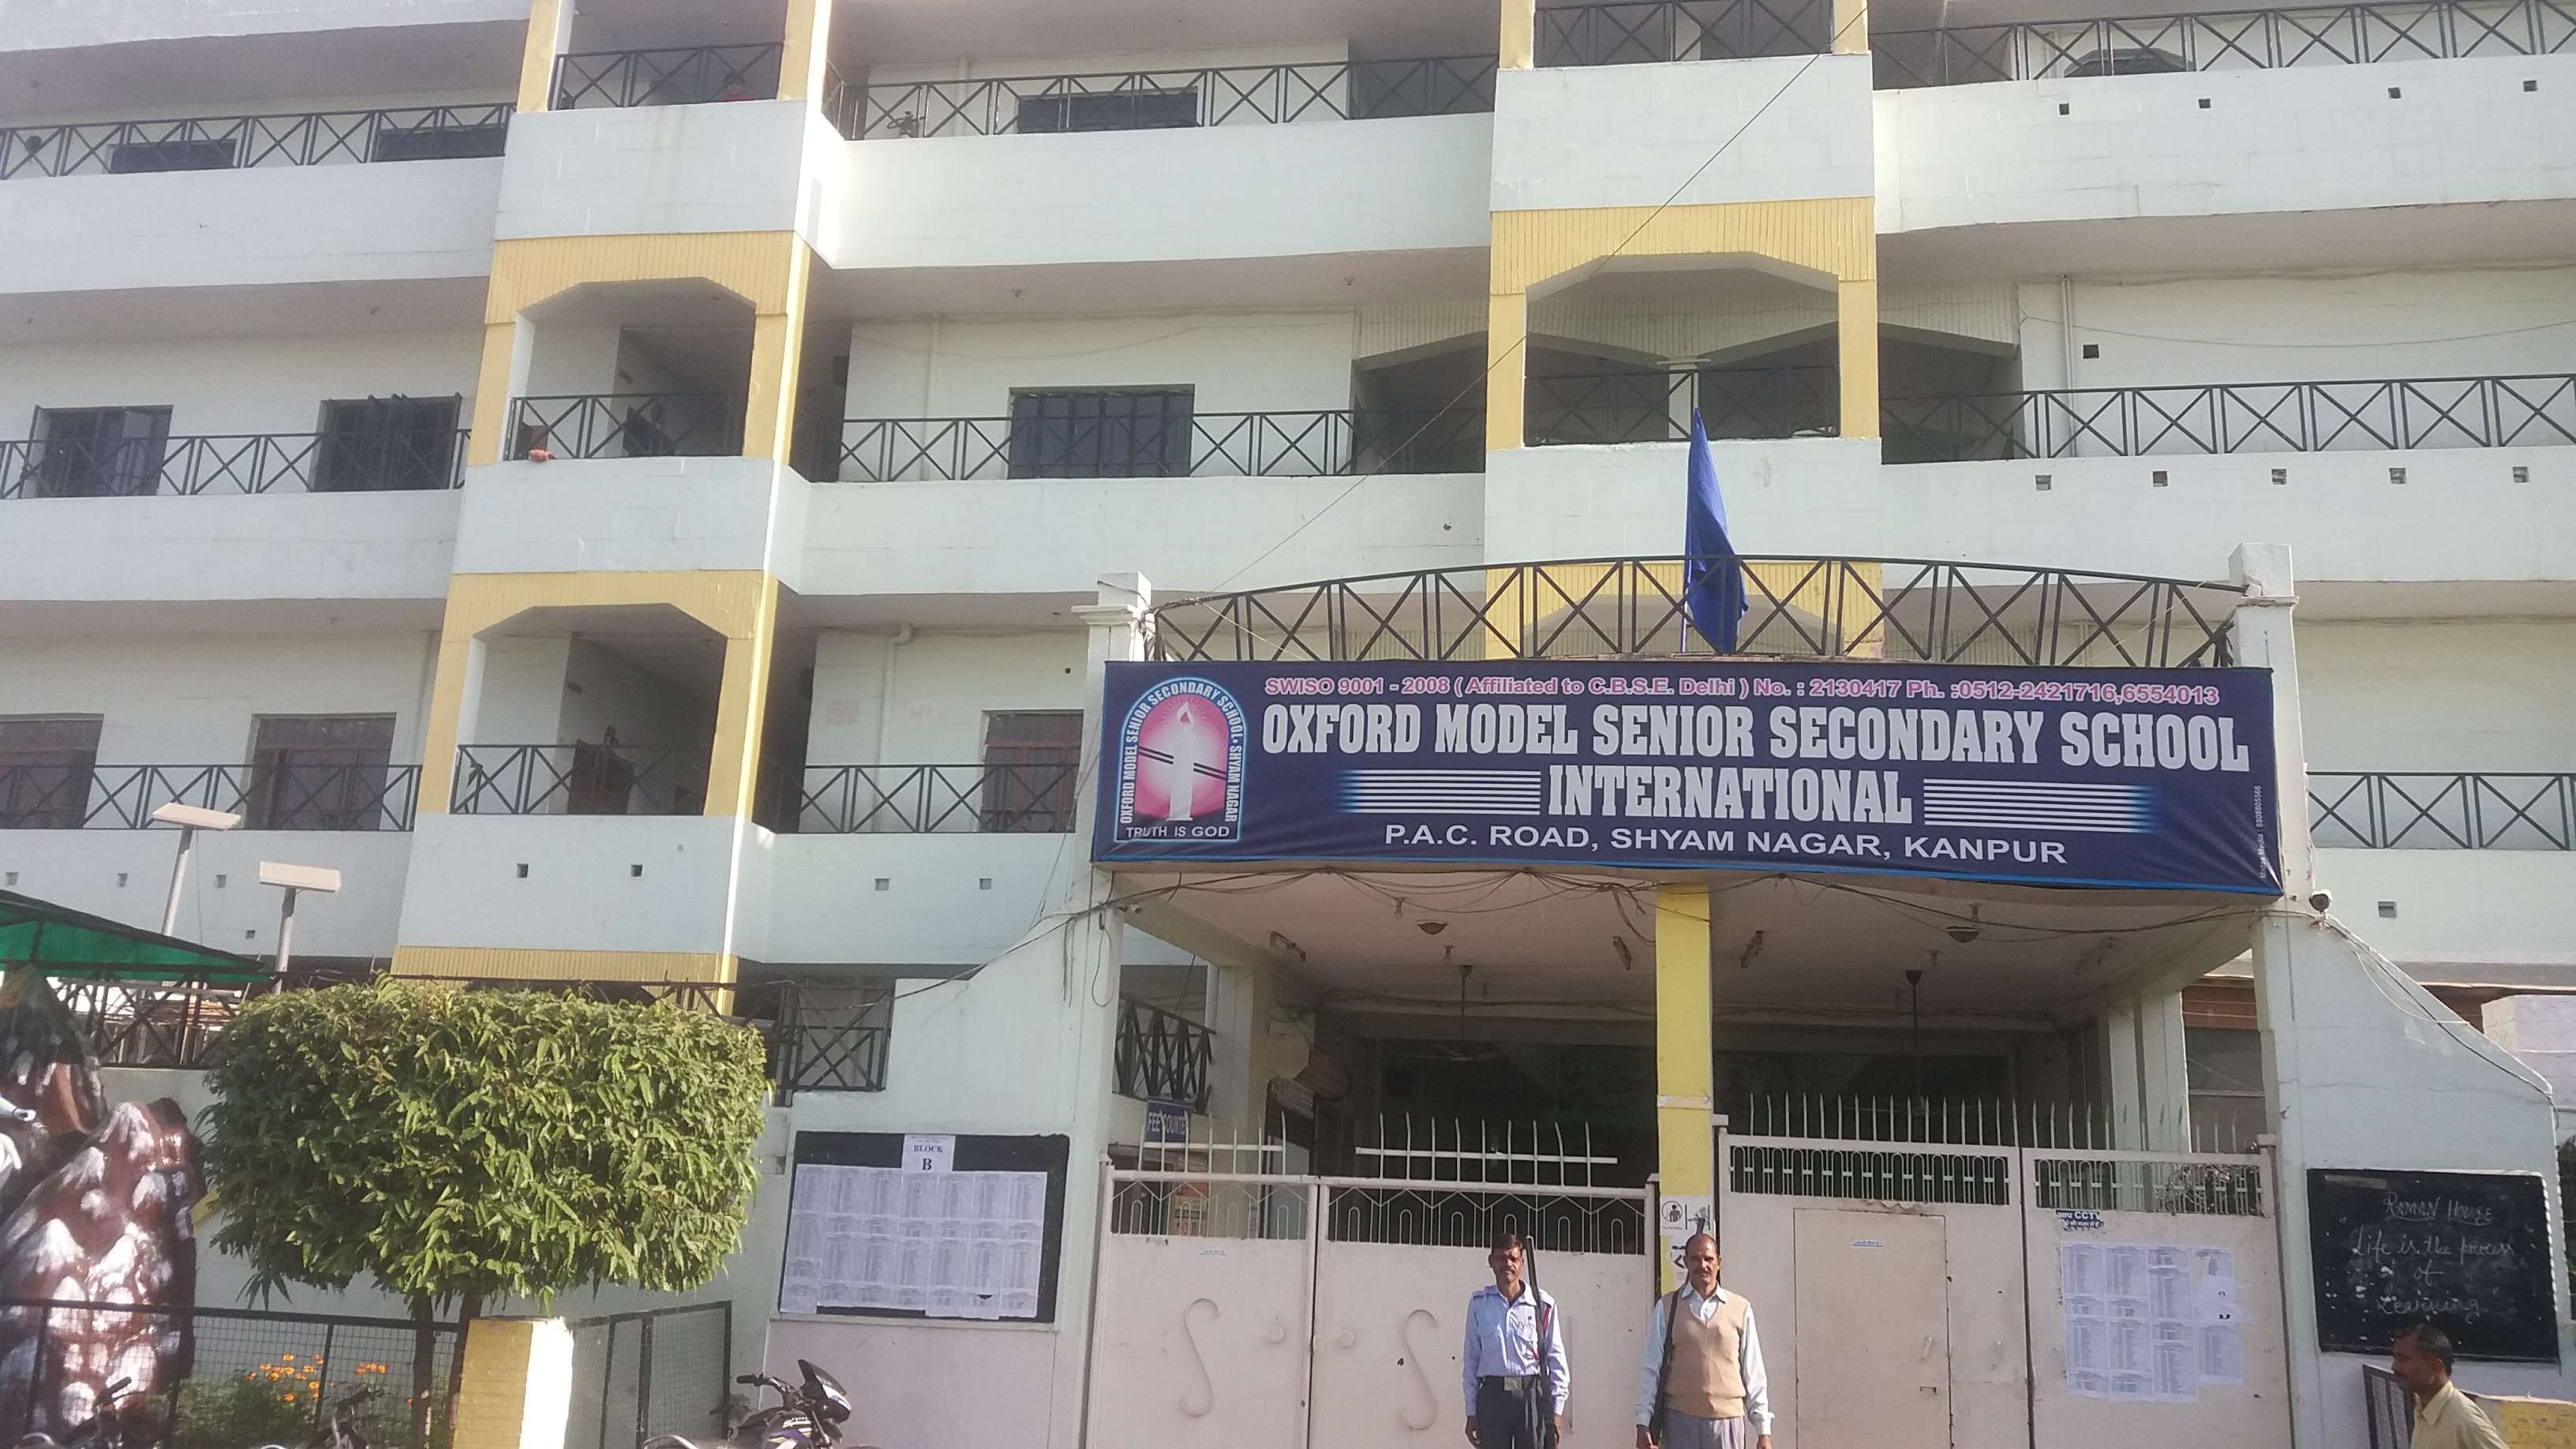 OXFORD MODEL SENIOR SECONDARY SCHOOL 147 E SHYAM NAGAR KANPUR UTTAR